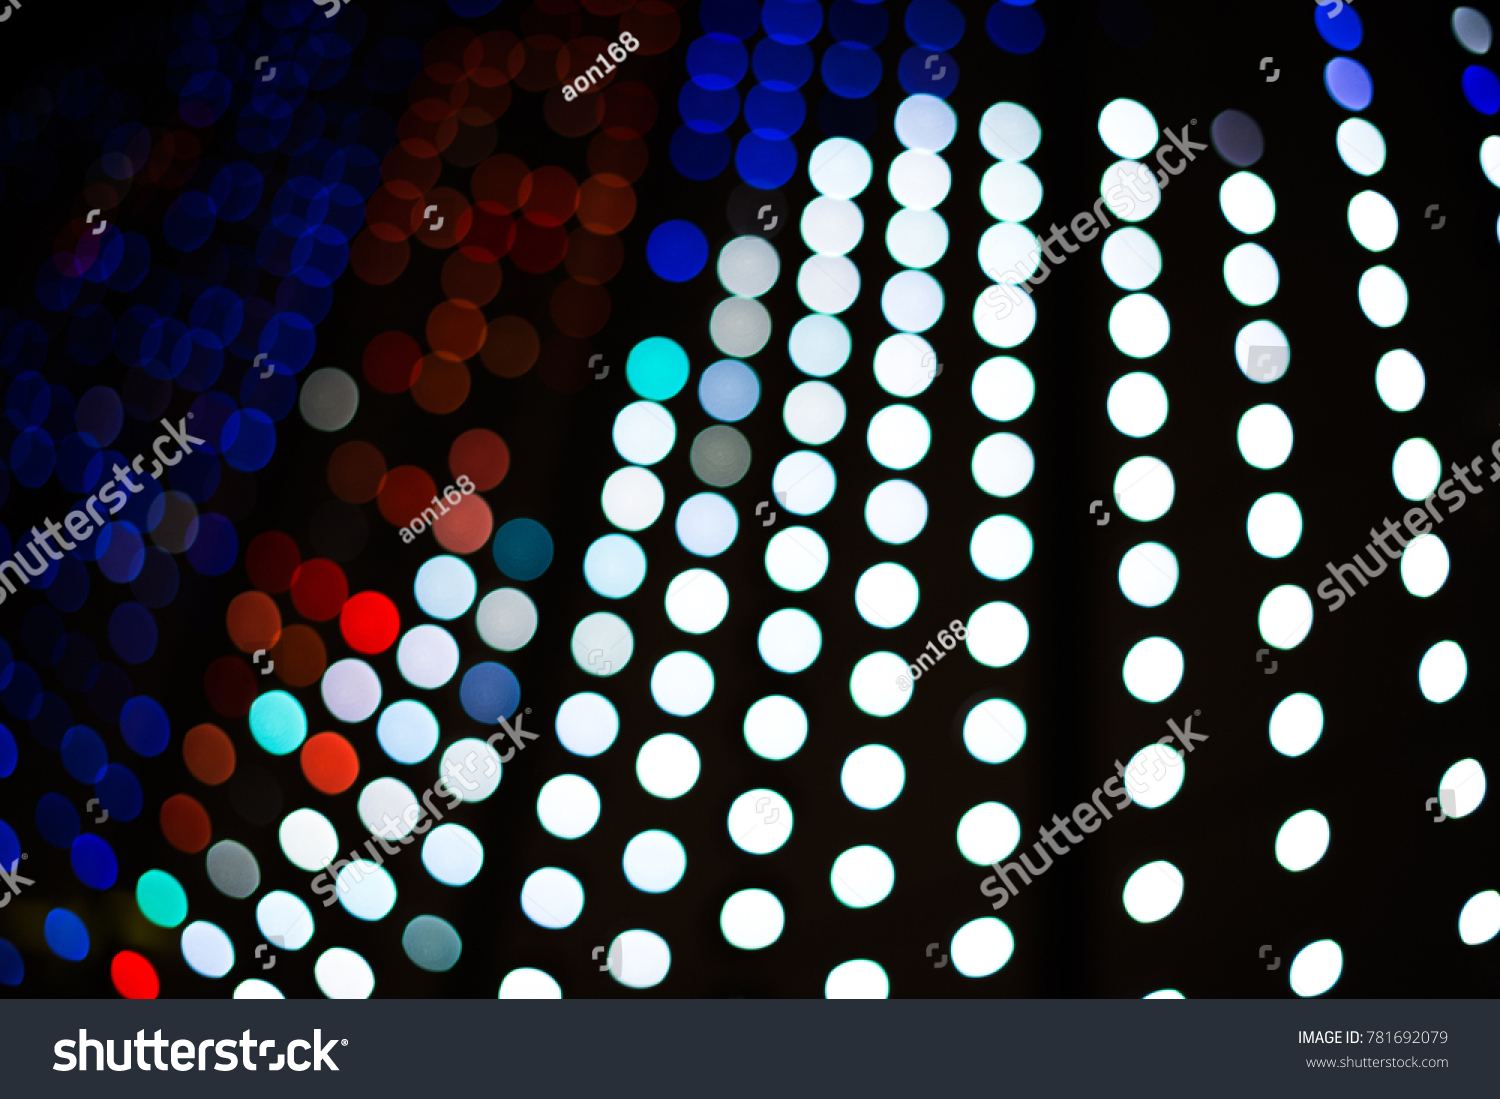 Abstract led lighting bokeh digital background imagen de archivo abstract led lighting bokeh digital background imagen de archivo stock 781692079 shutterstock malvernweather Image collections